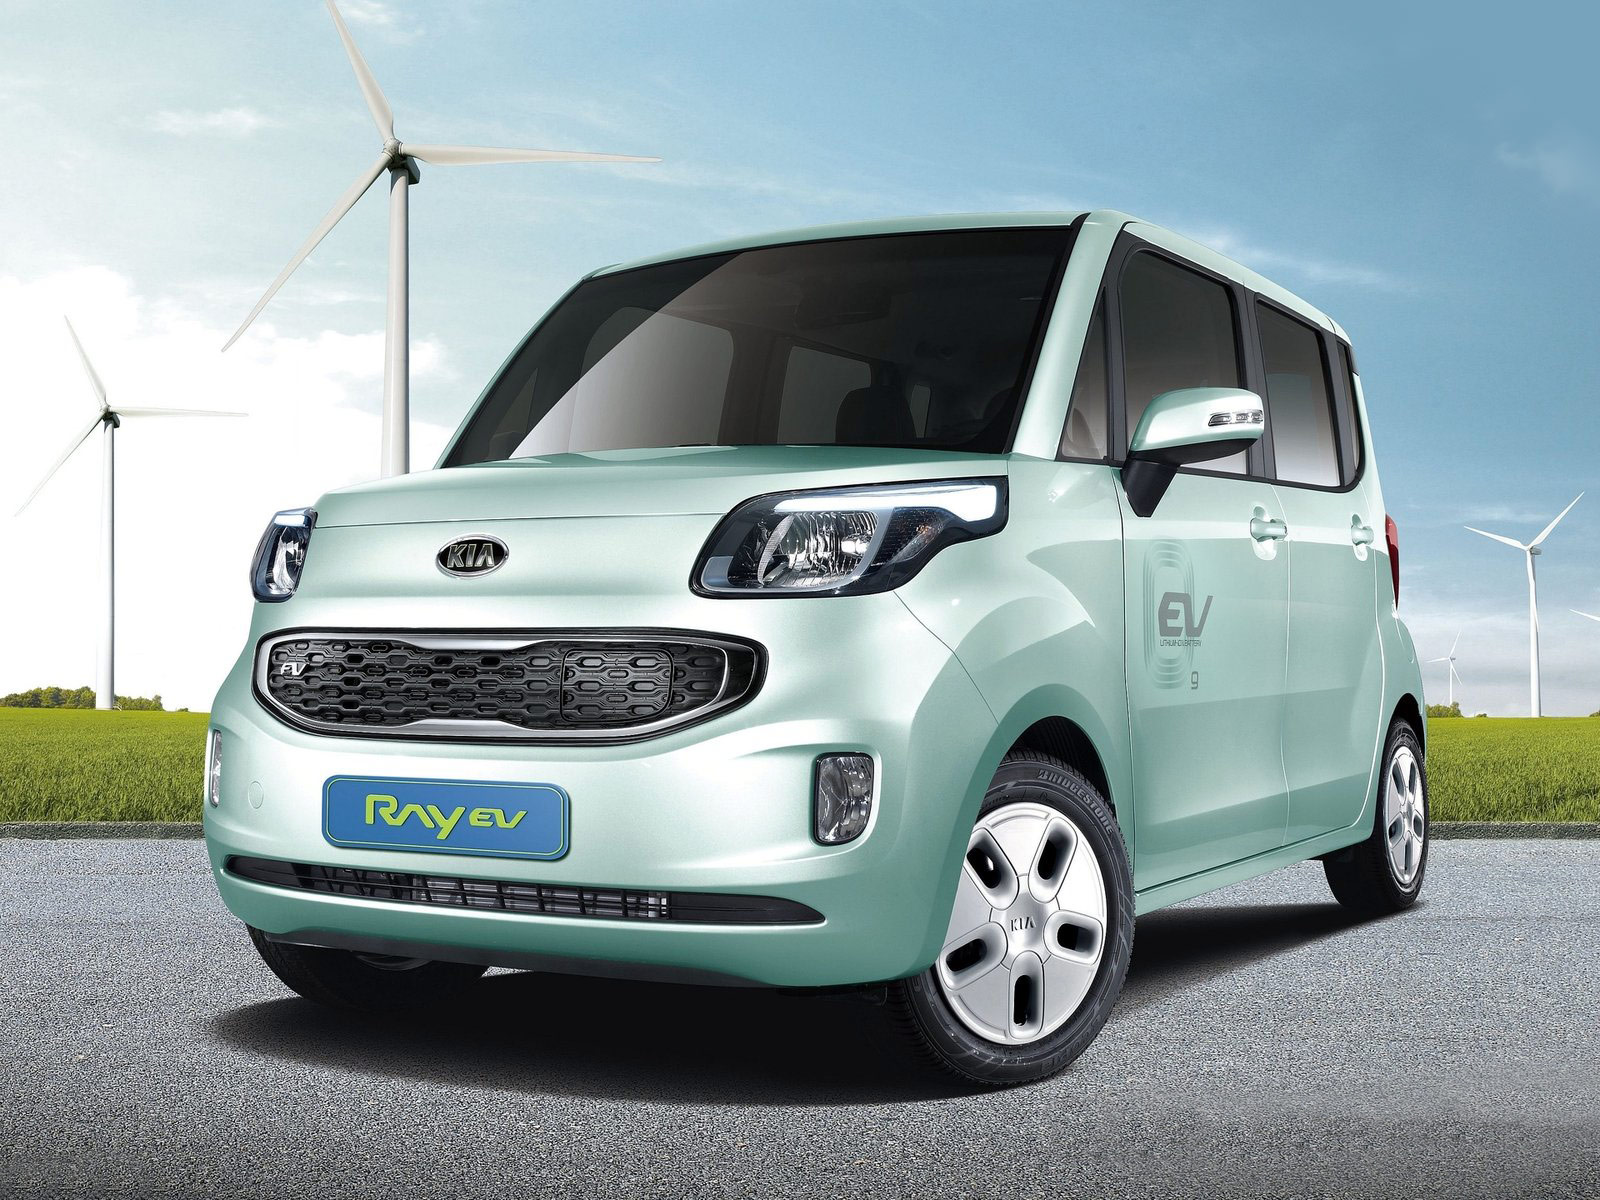 2012 Kia Ray Ev Car Desktop Wallpaper